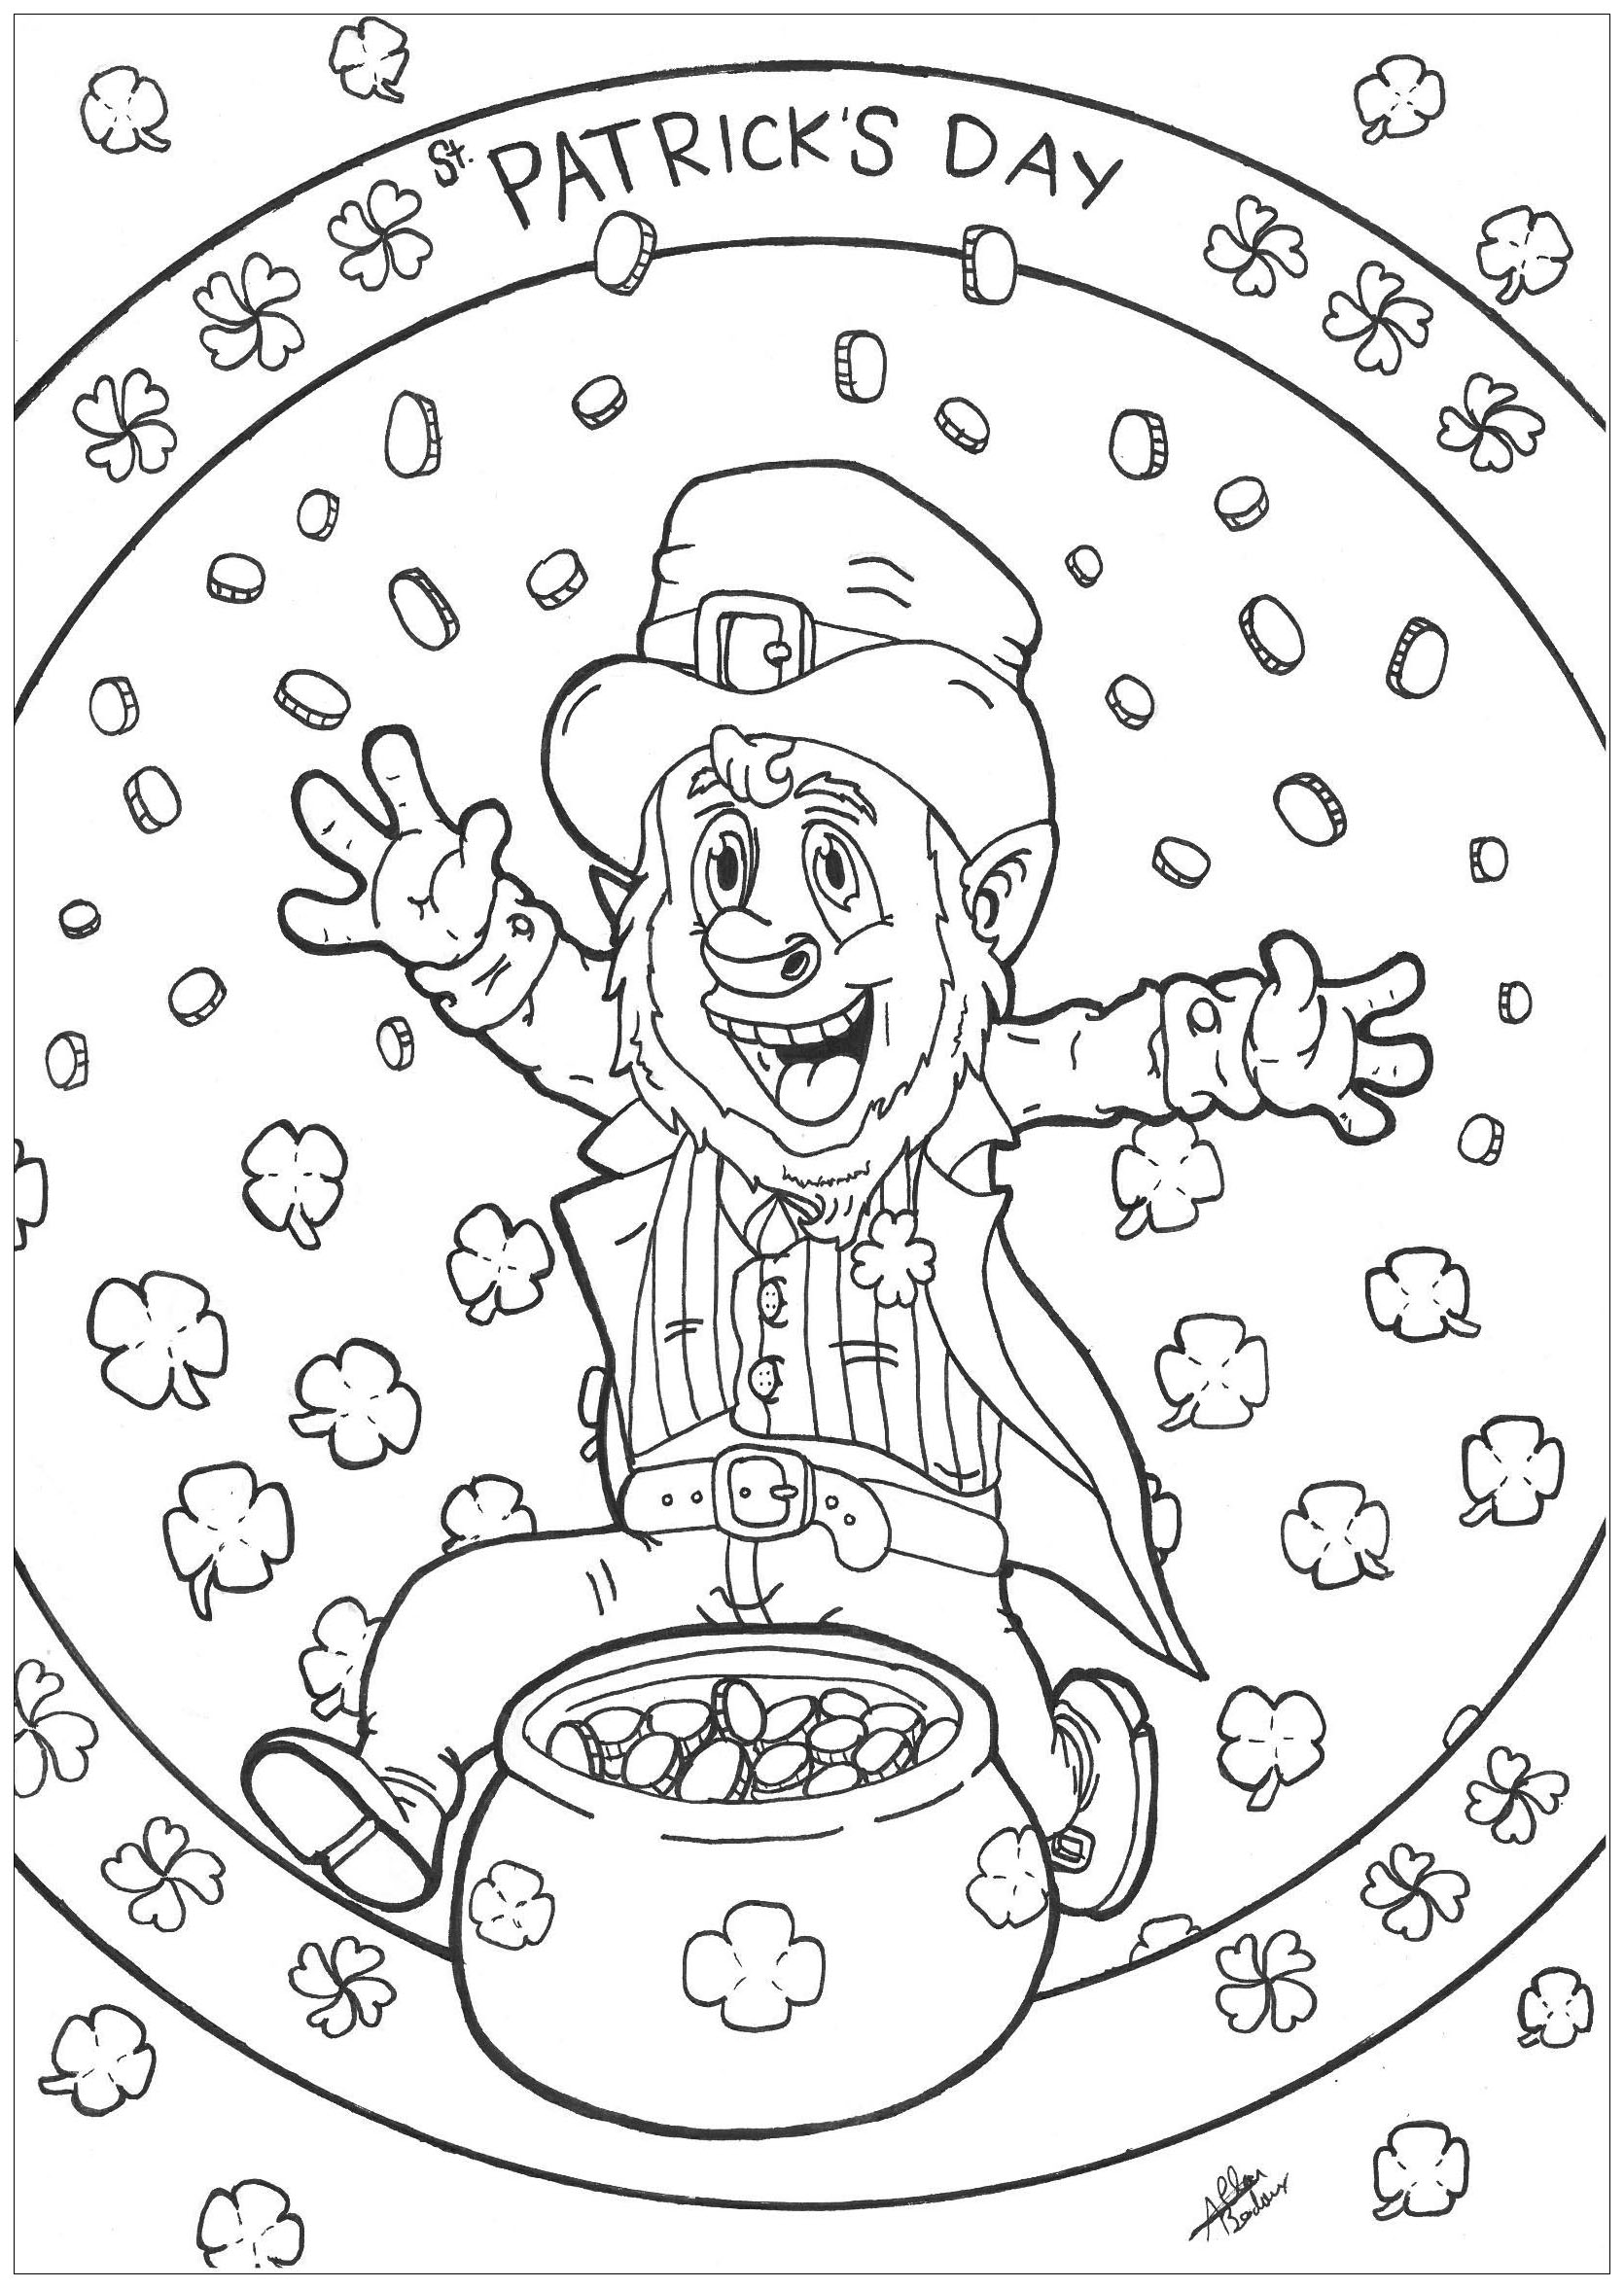 coloring-page-adult-leprechaun-patrick-day - Colorear para adultos ...